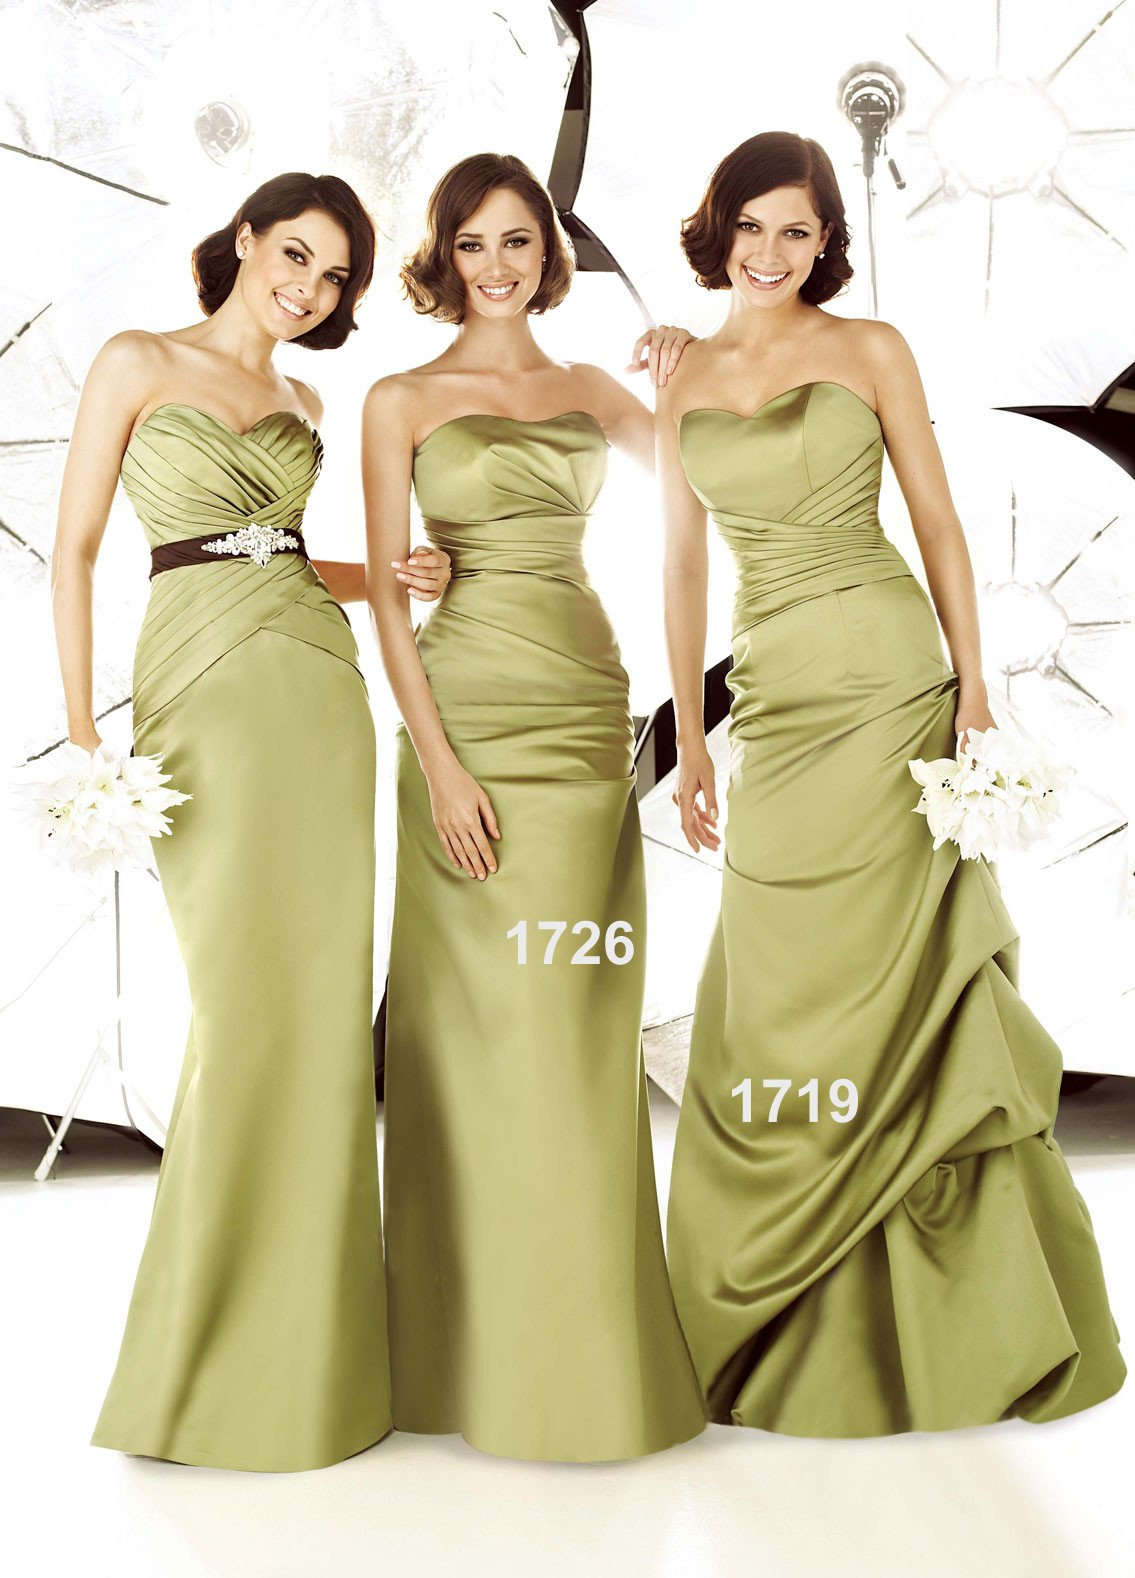 Impression Bridesmaid 1726 Claret Size 2 In Stock Bridesmaid Dress-NEW - Tom's Bridal